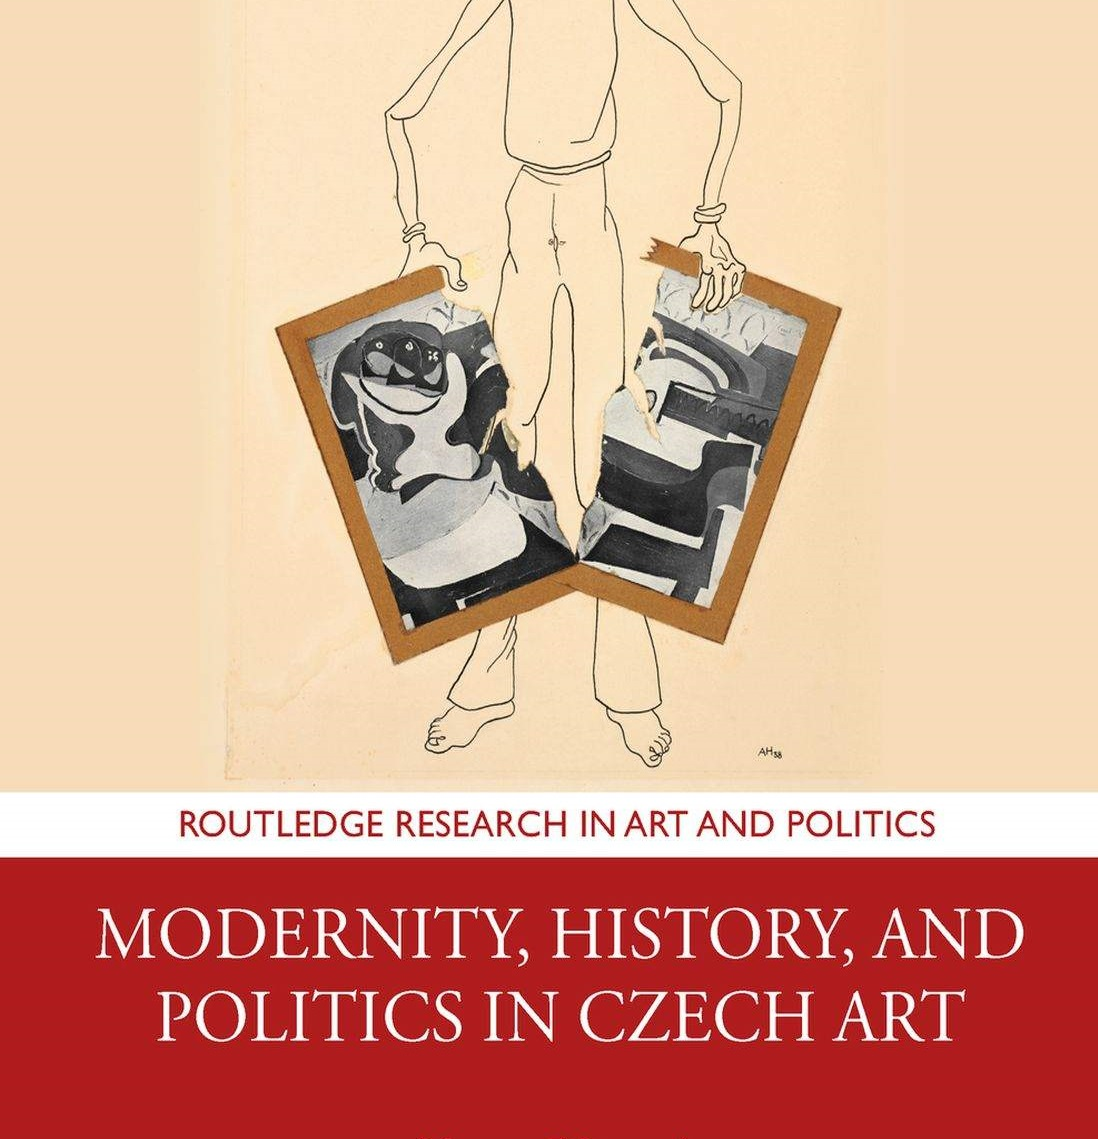 Book Announcement: Modernity, History, and Politics in Czech Art by Marta Filipová